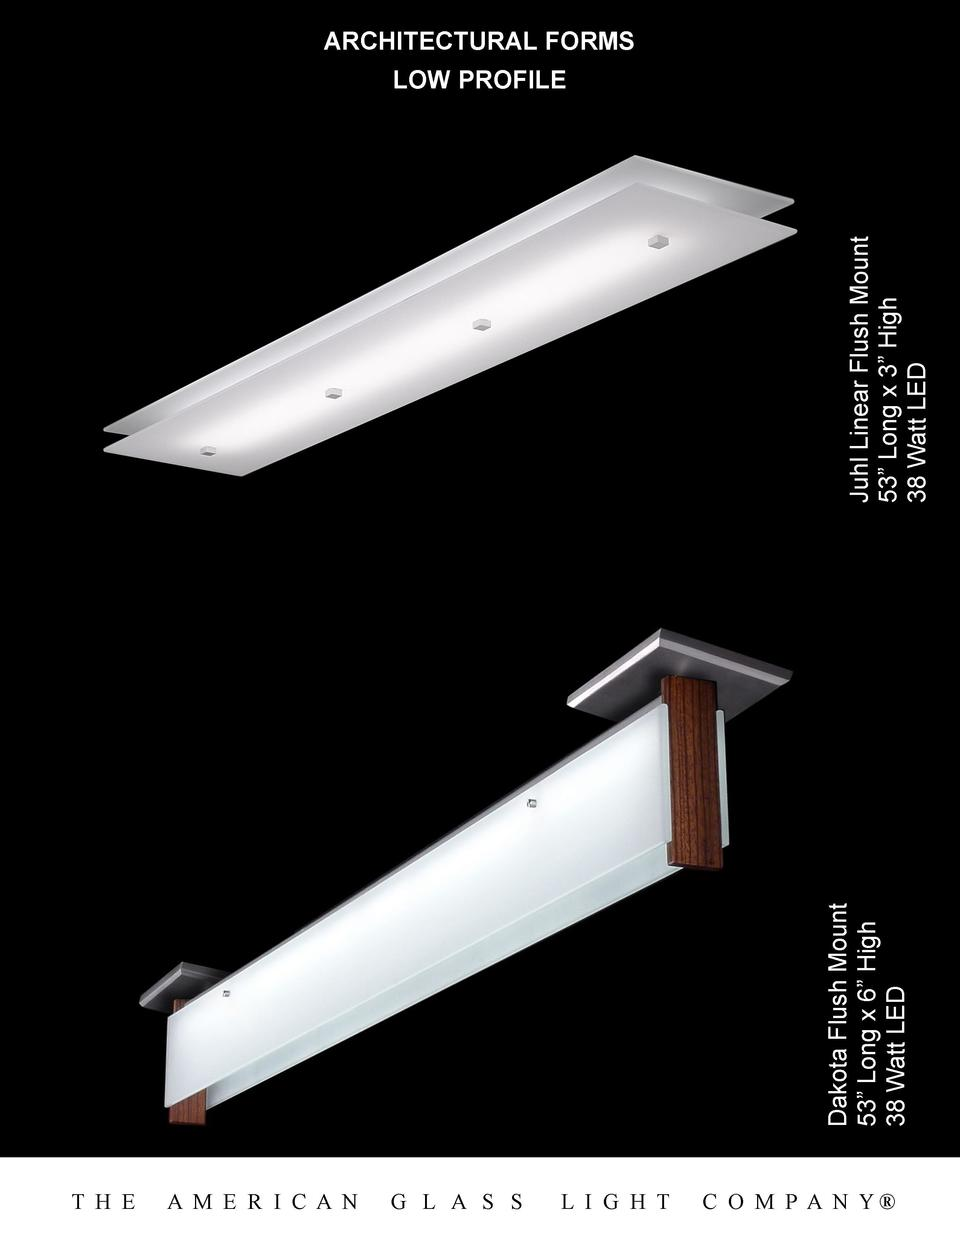 Dakota Flush Mount 53    Long x 6    High 38 Watt LED  Juhl Linear Flush Mount 53    Long x 3    High 38 Watt LED  ARCHITE...